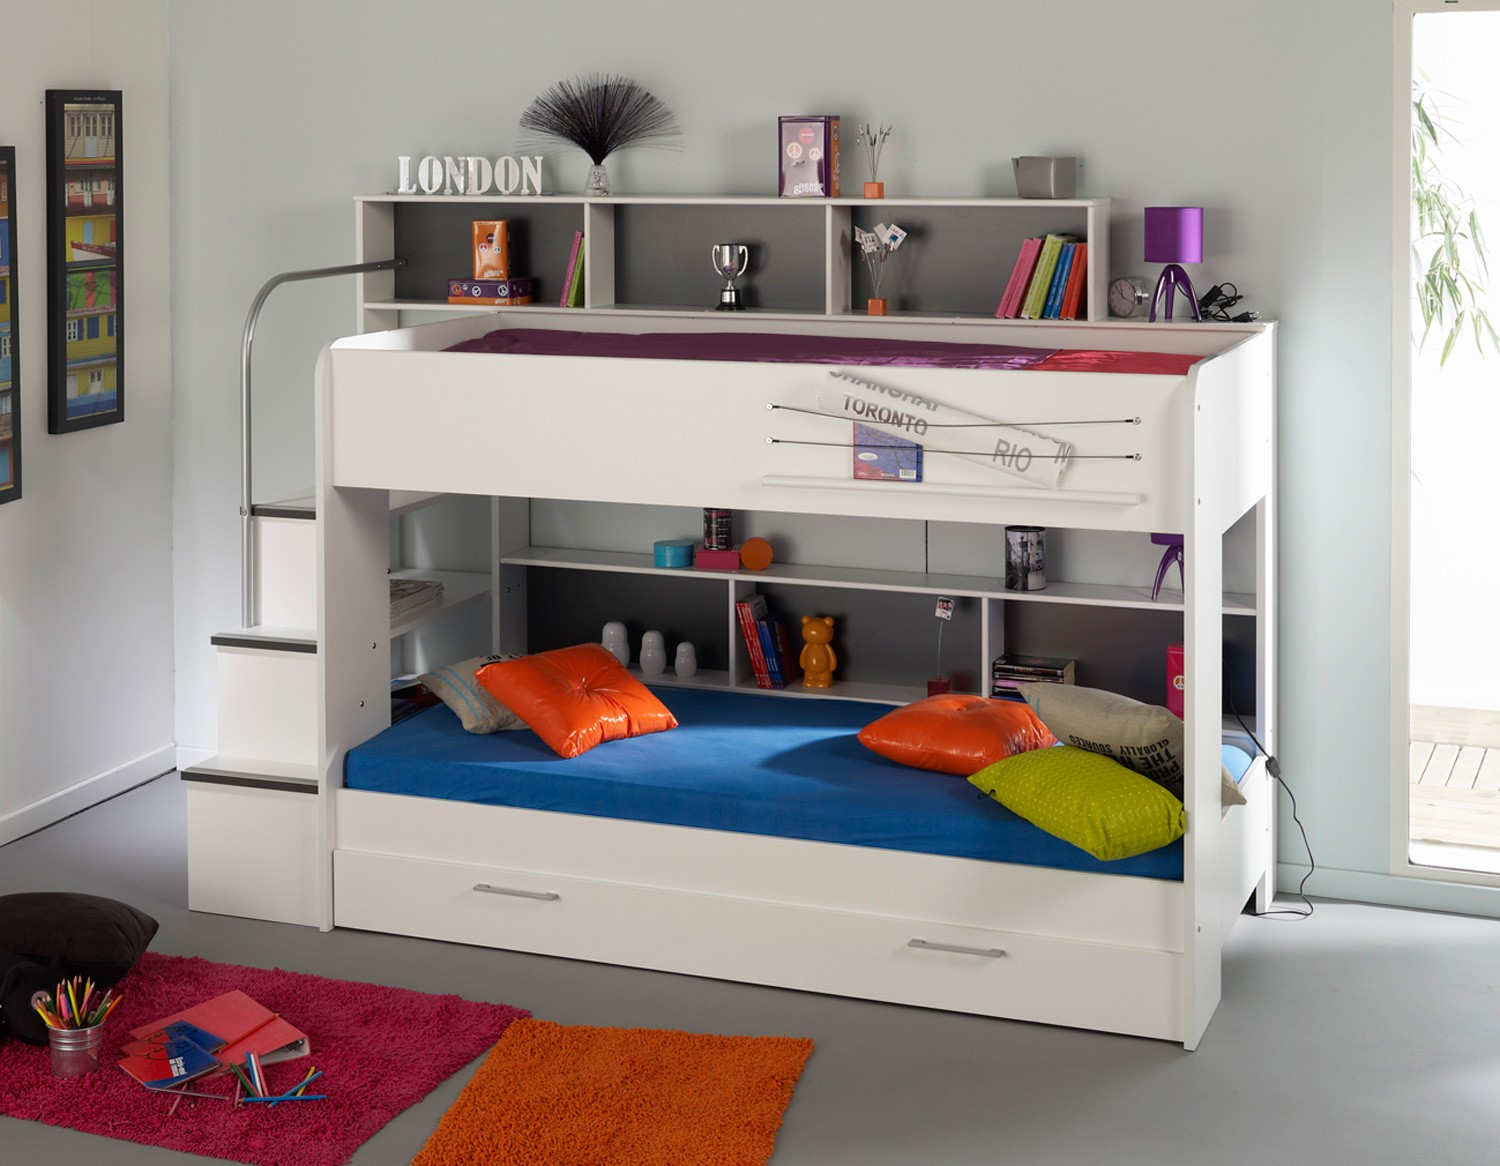 lovely Bunk Beds With Stairs in white with storage on gray tile floor matched with gray wall plus lovely rug for teen bedroom decor ideas